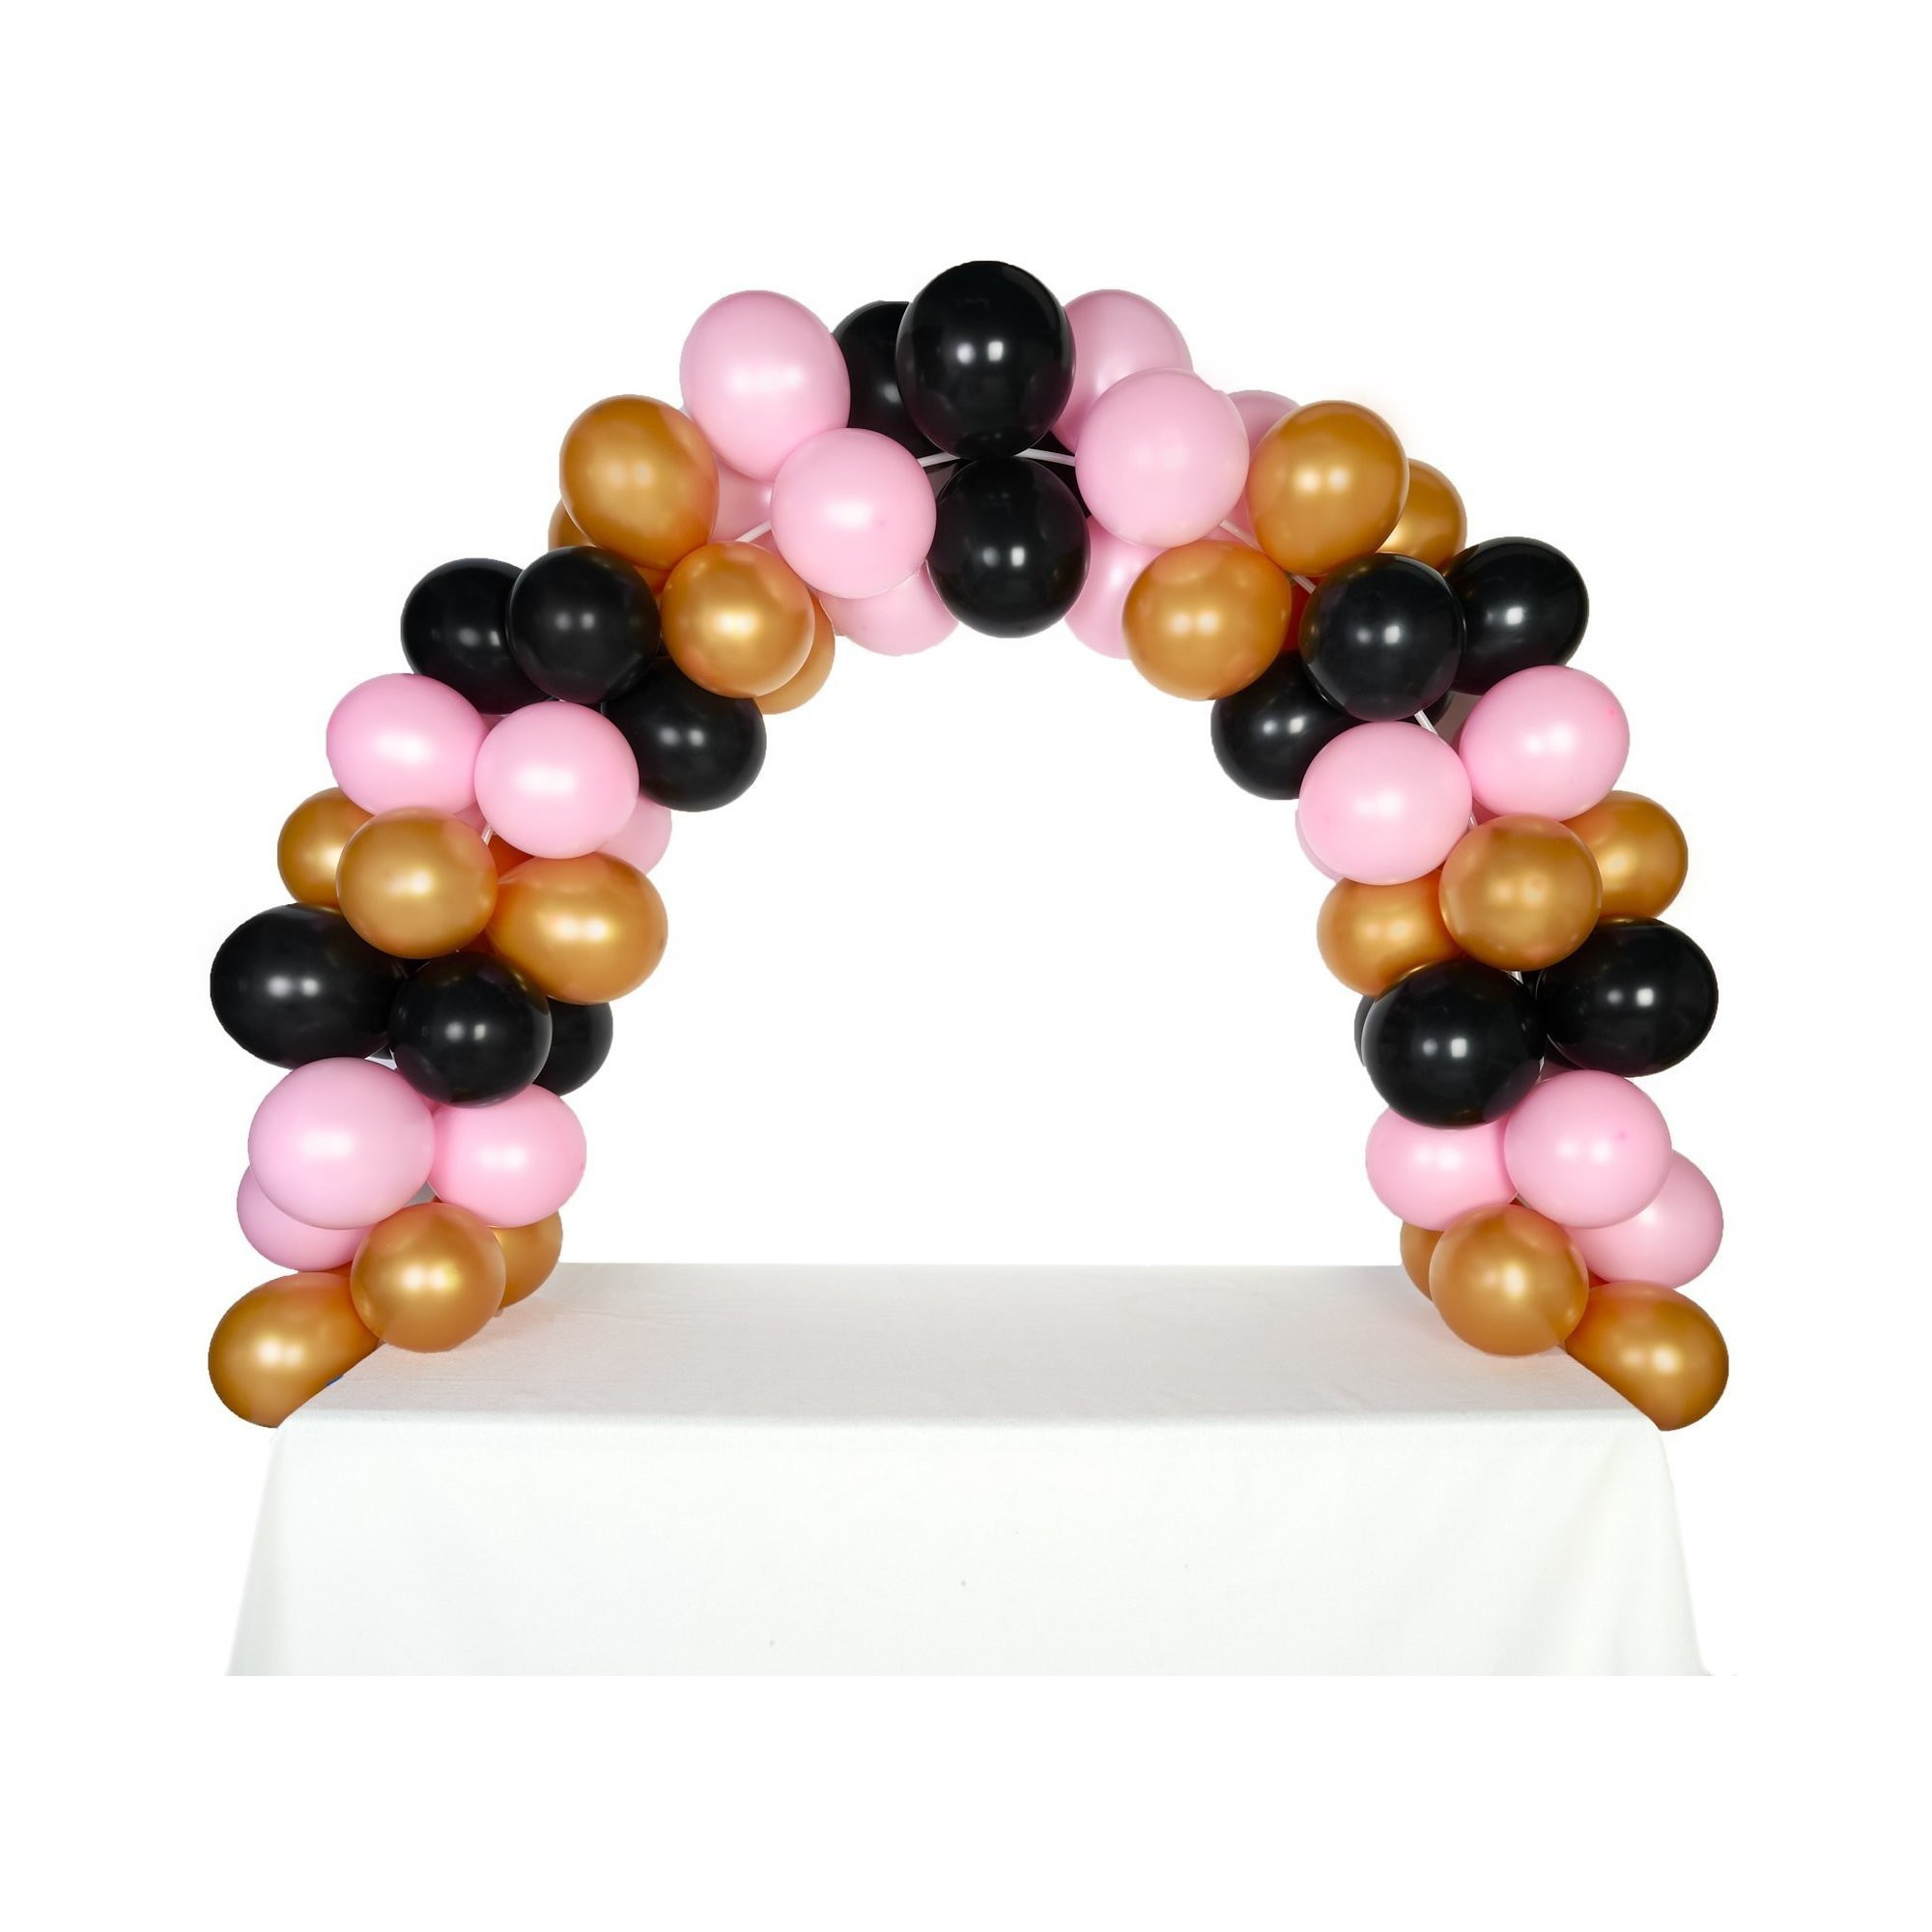 Celebration Tabletop Balloon ArchGold Black & Pink in